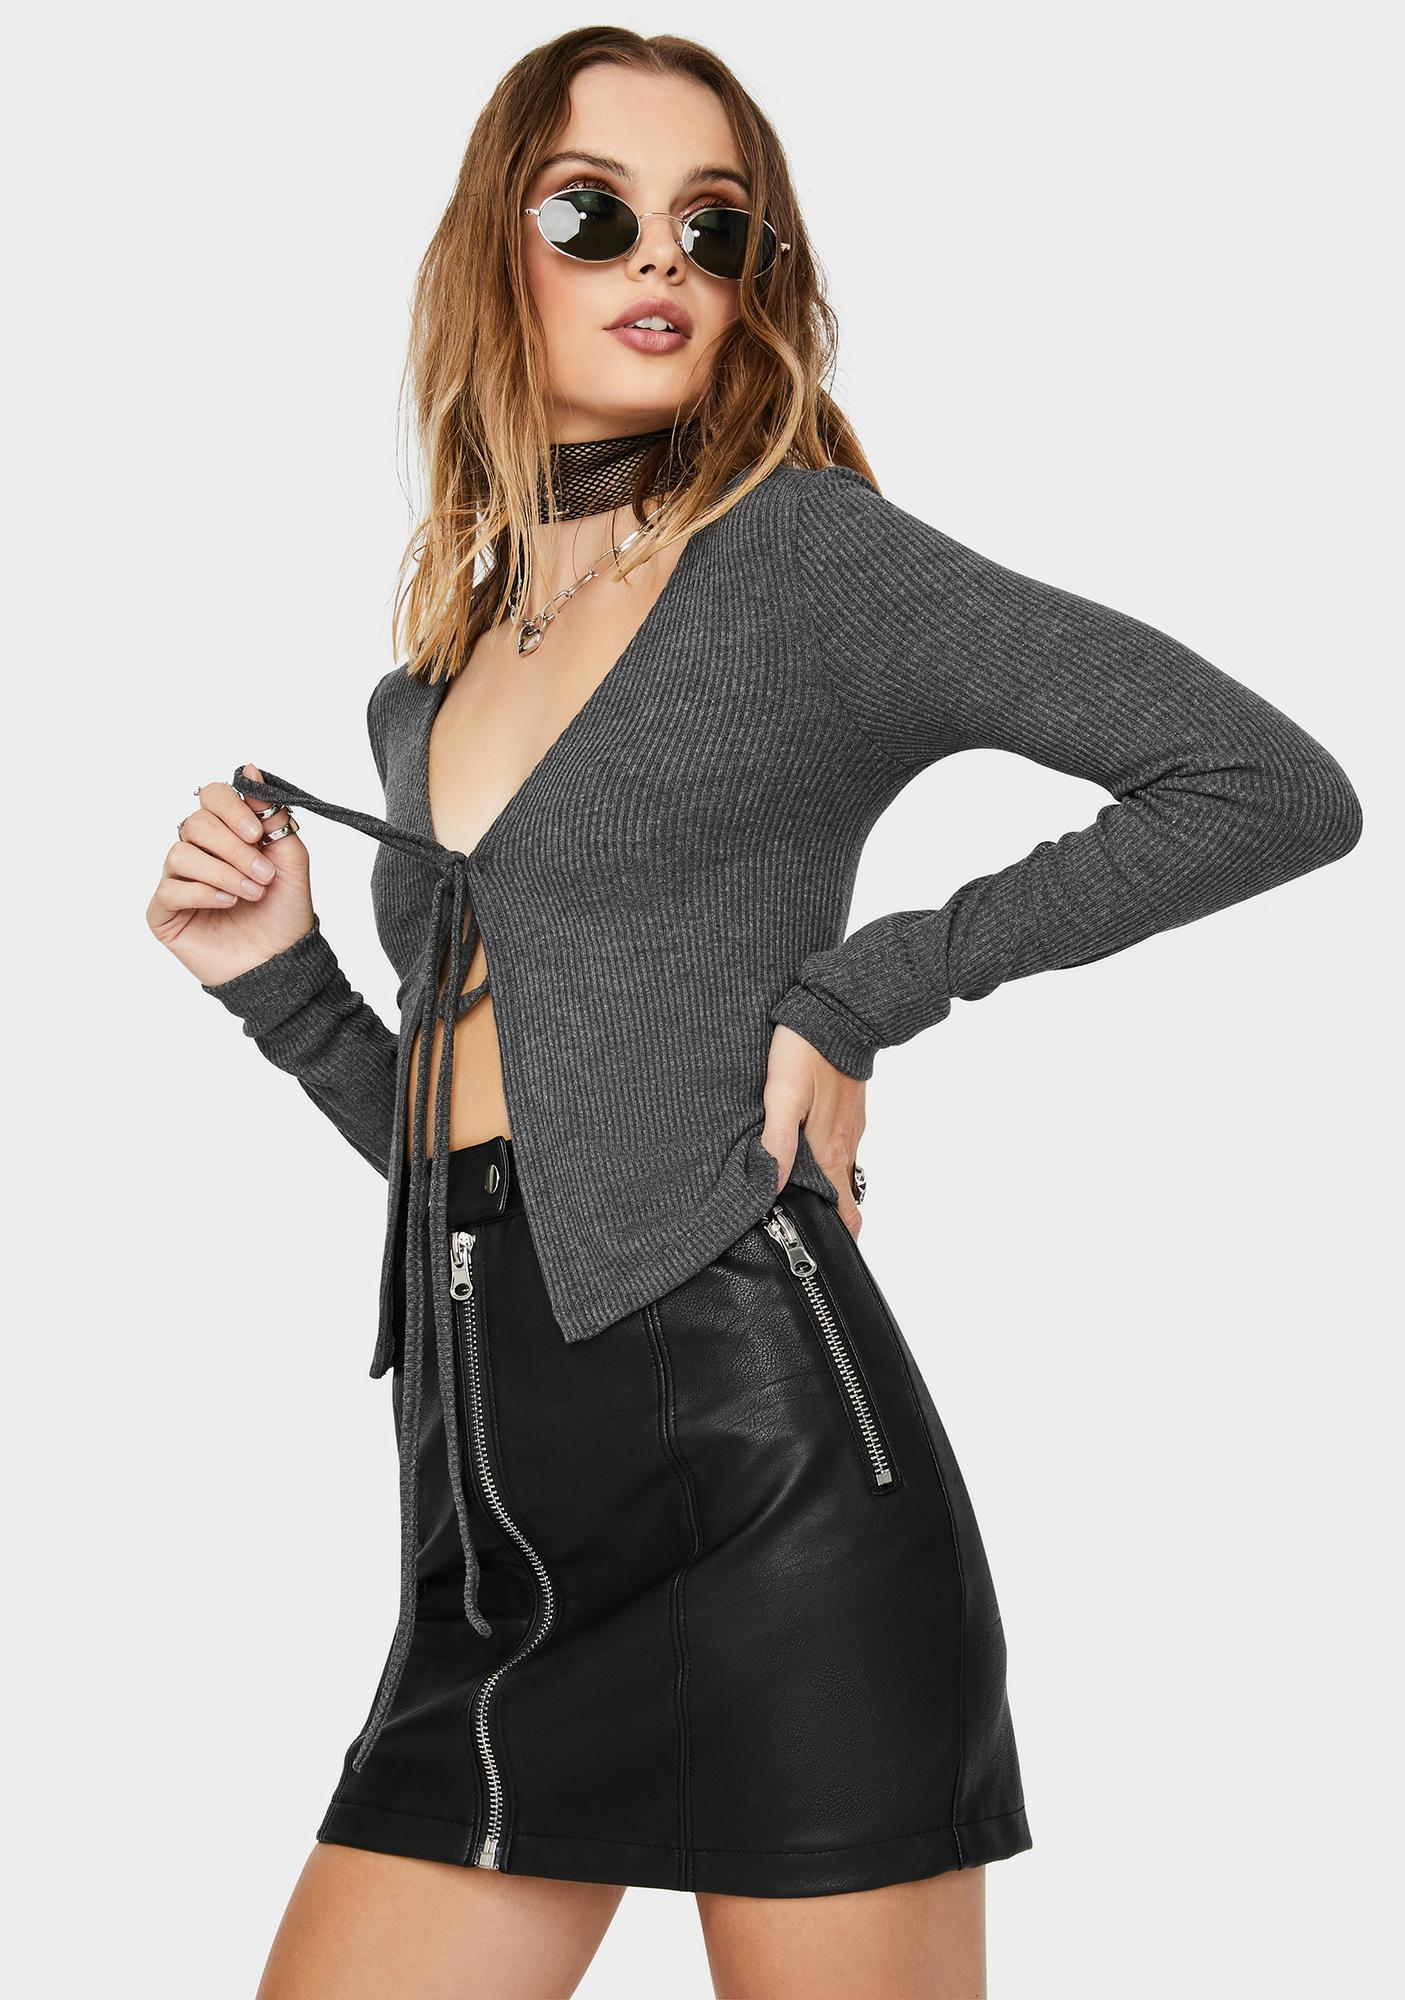 Kiki Riki Charcoal So Over It Front Tie Sweater